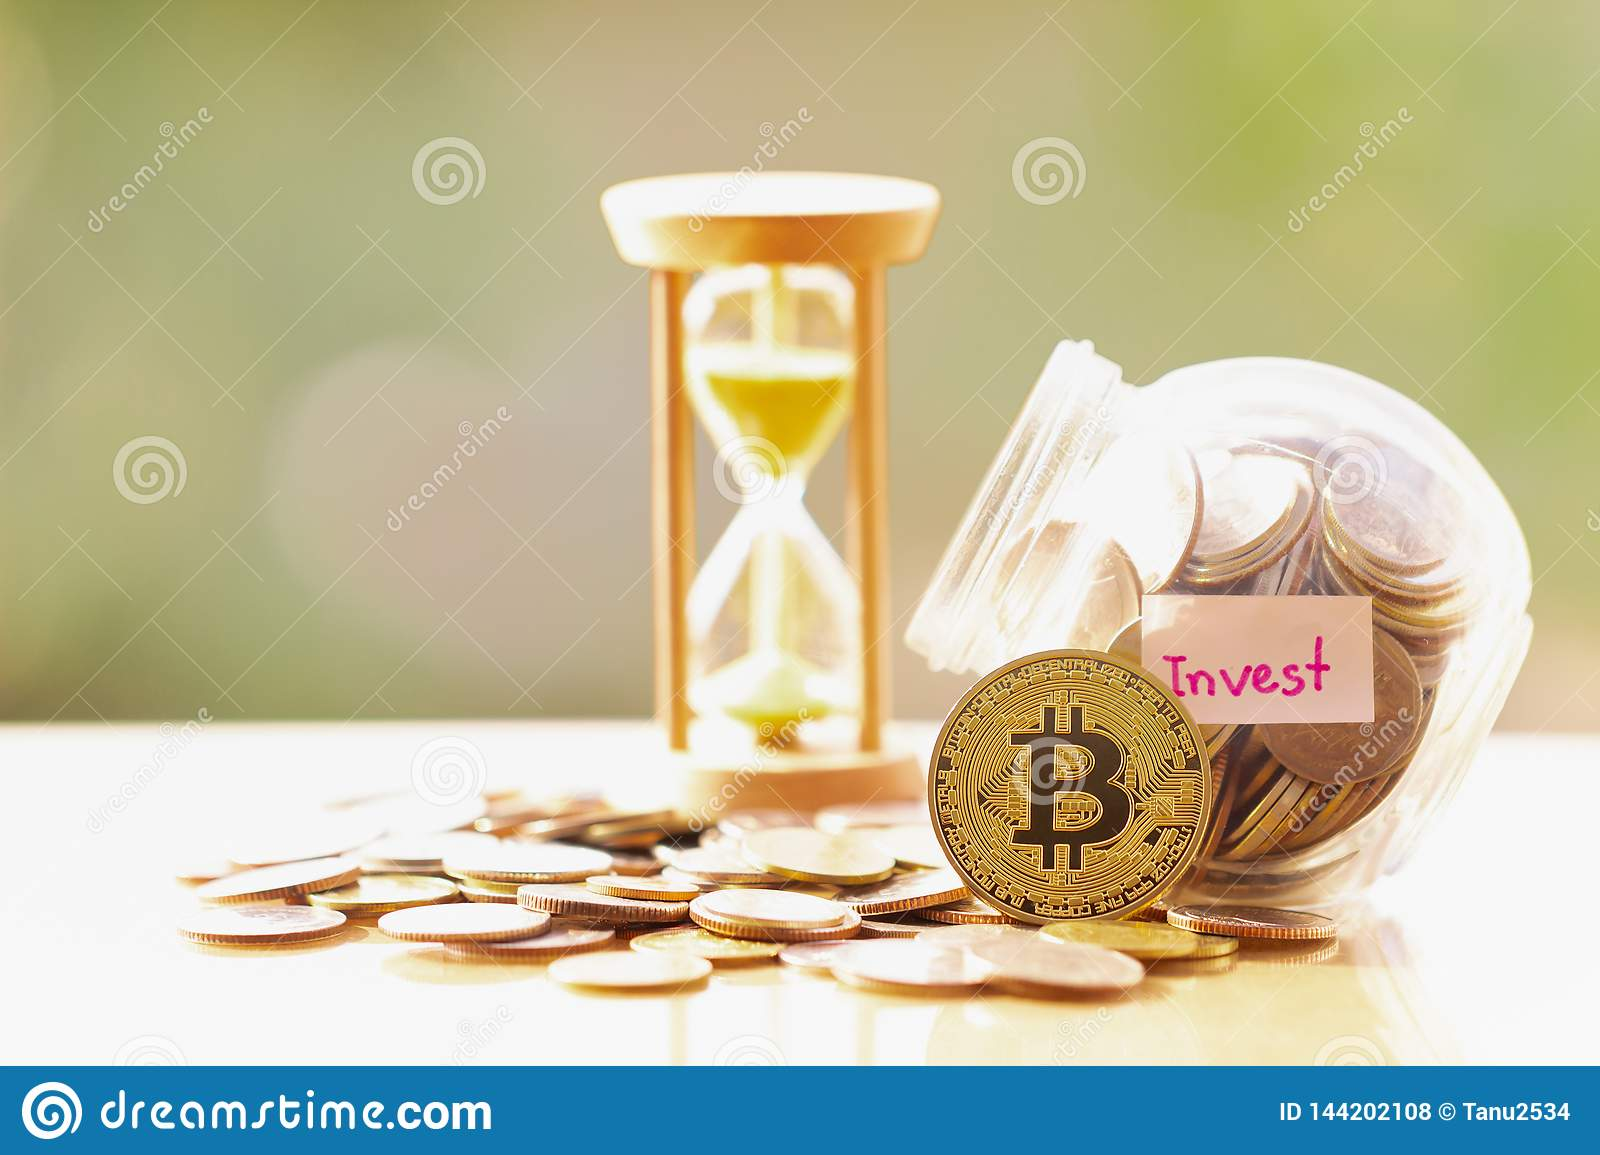 invest cryptocurrency taxes